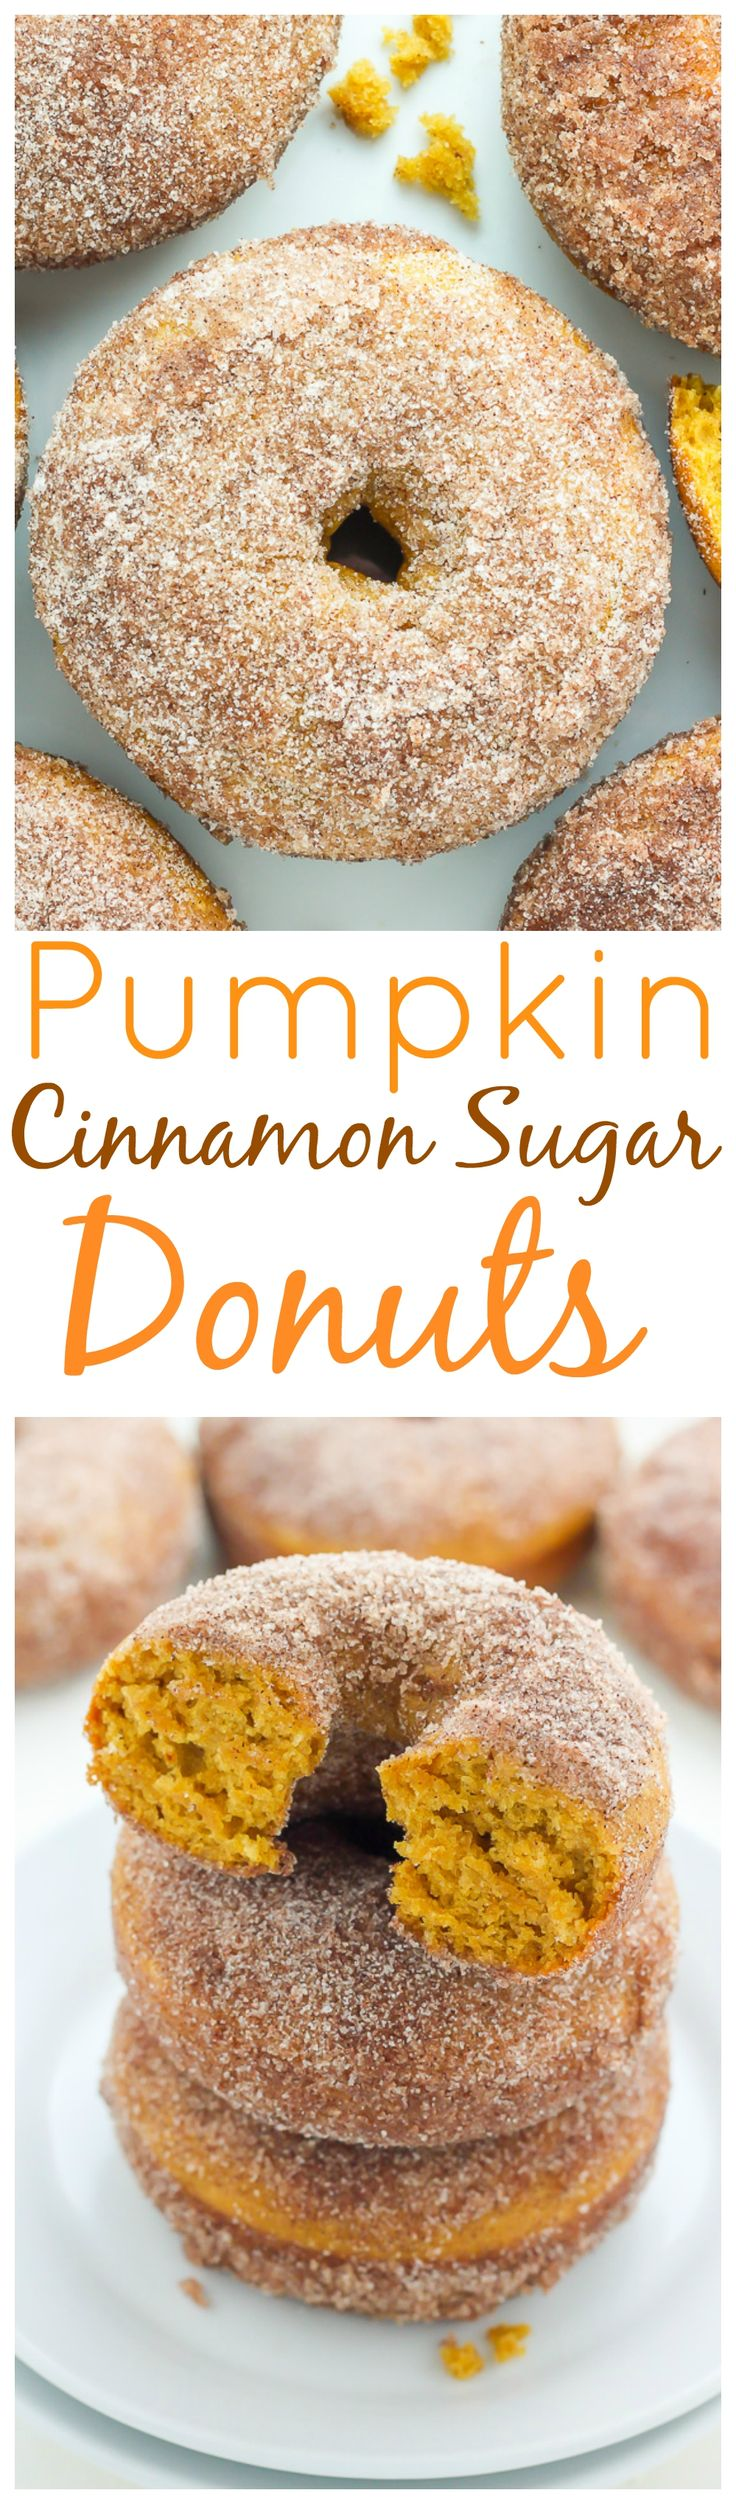 Pumpkin Cinnamon Sugar Donuts - super soft, fluffy, and loaded with pumpkin flavor! The best part? They're ready in 20 minutes!!!